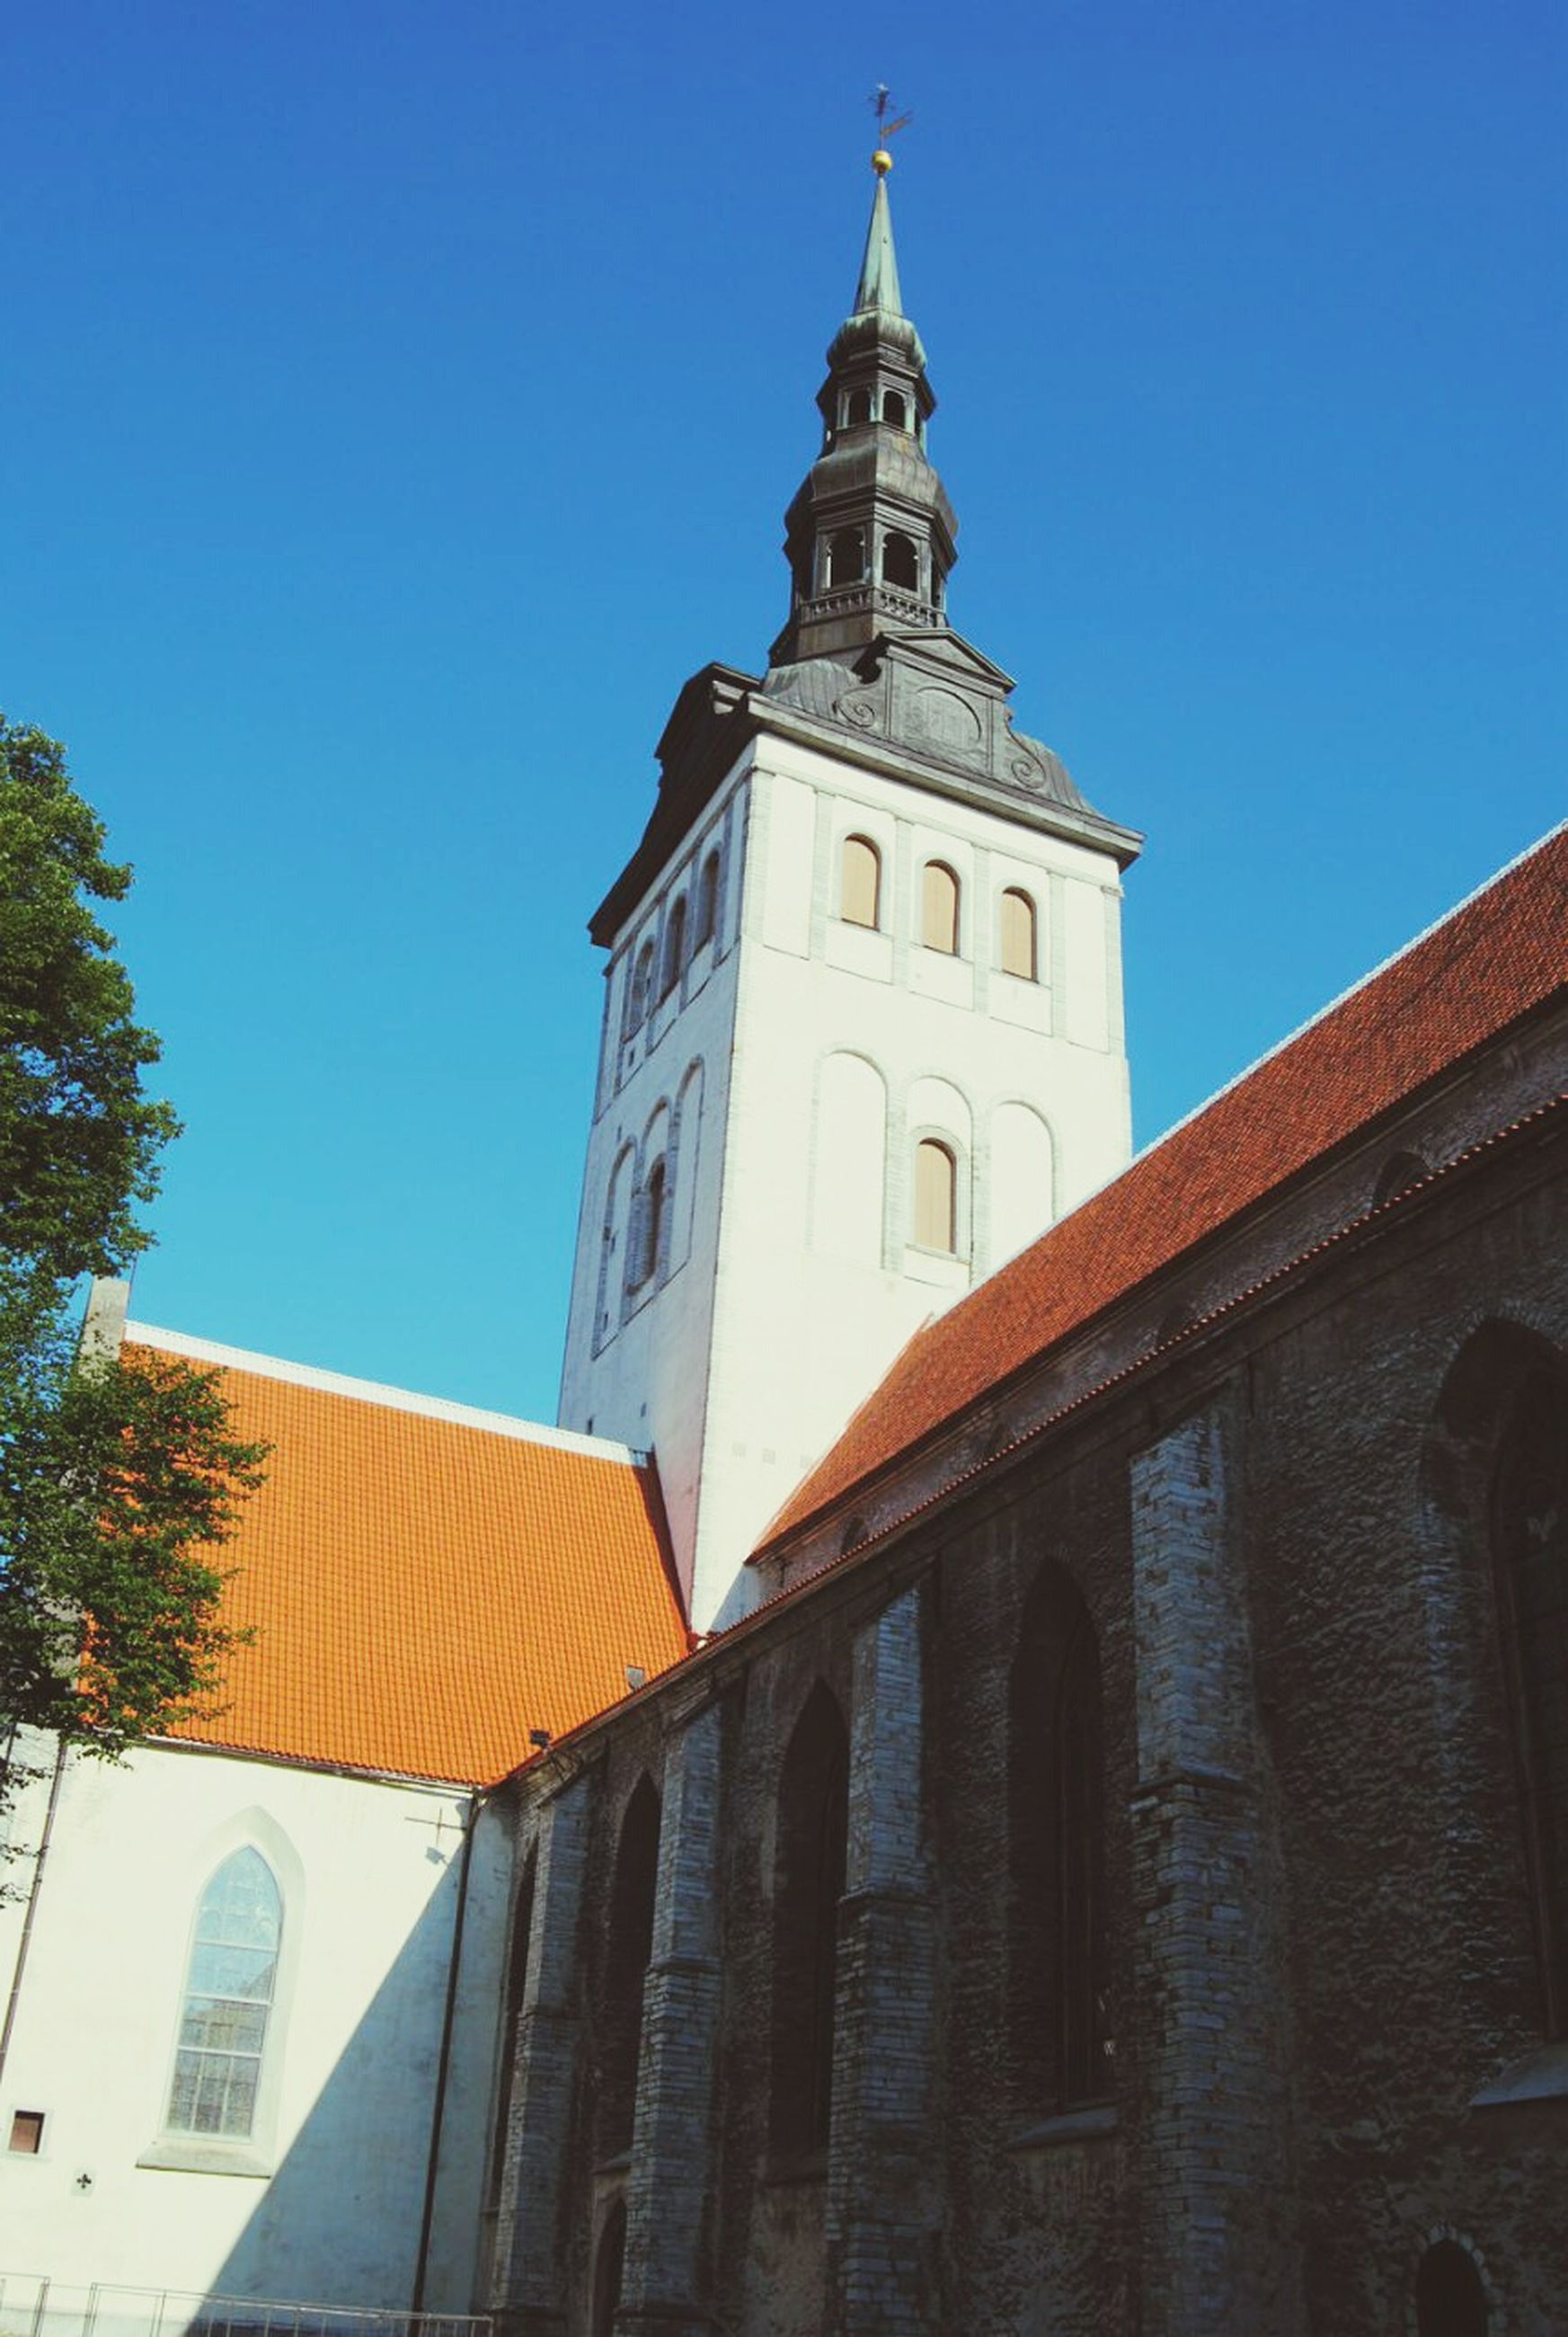 building exterior, architecture, built structure, low angle view, clear sky, blue, church, place of worship, religion, window, tower, tree, sunlight, residential structure, residential building, house, day, building, high section